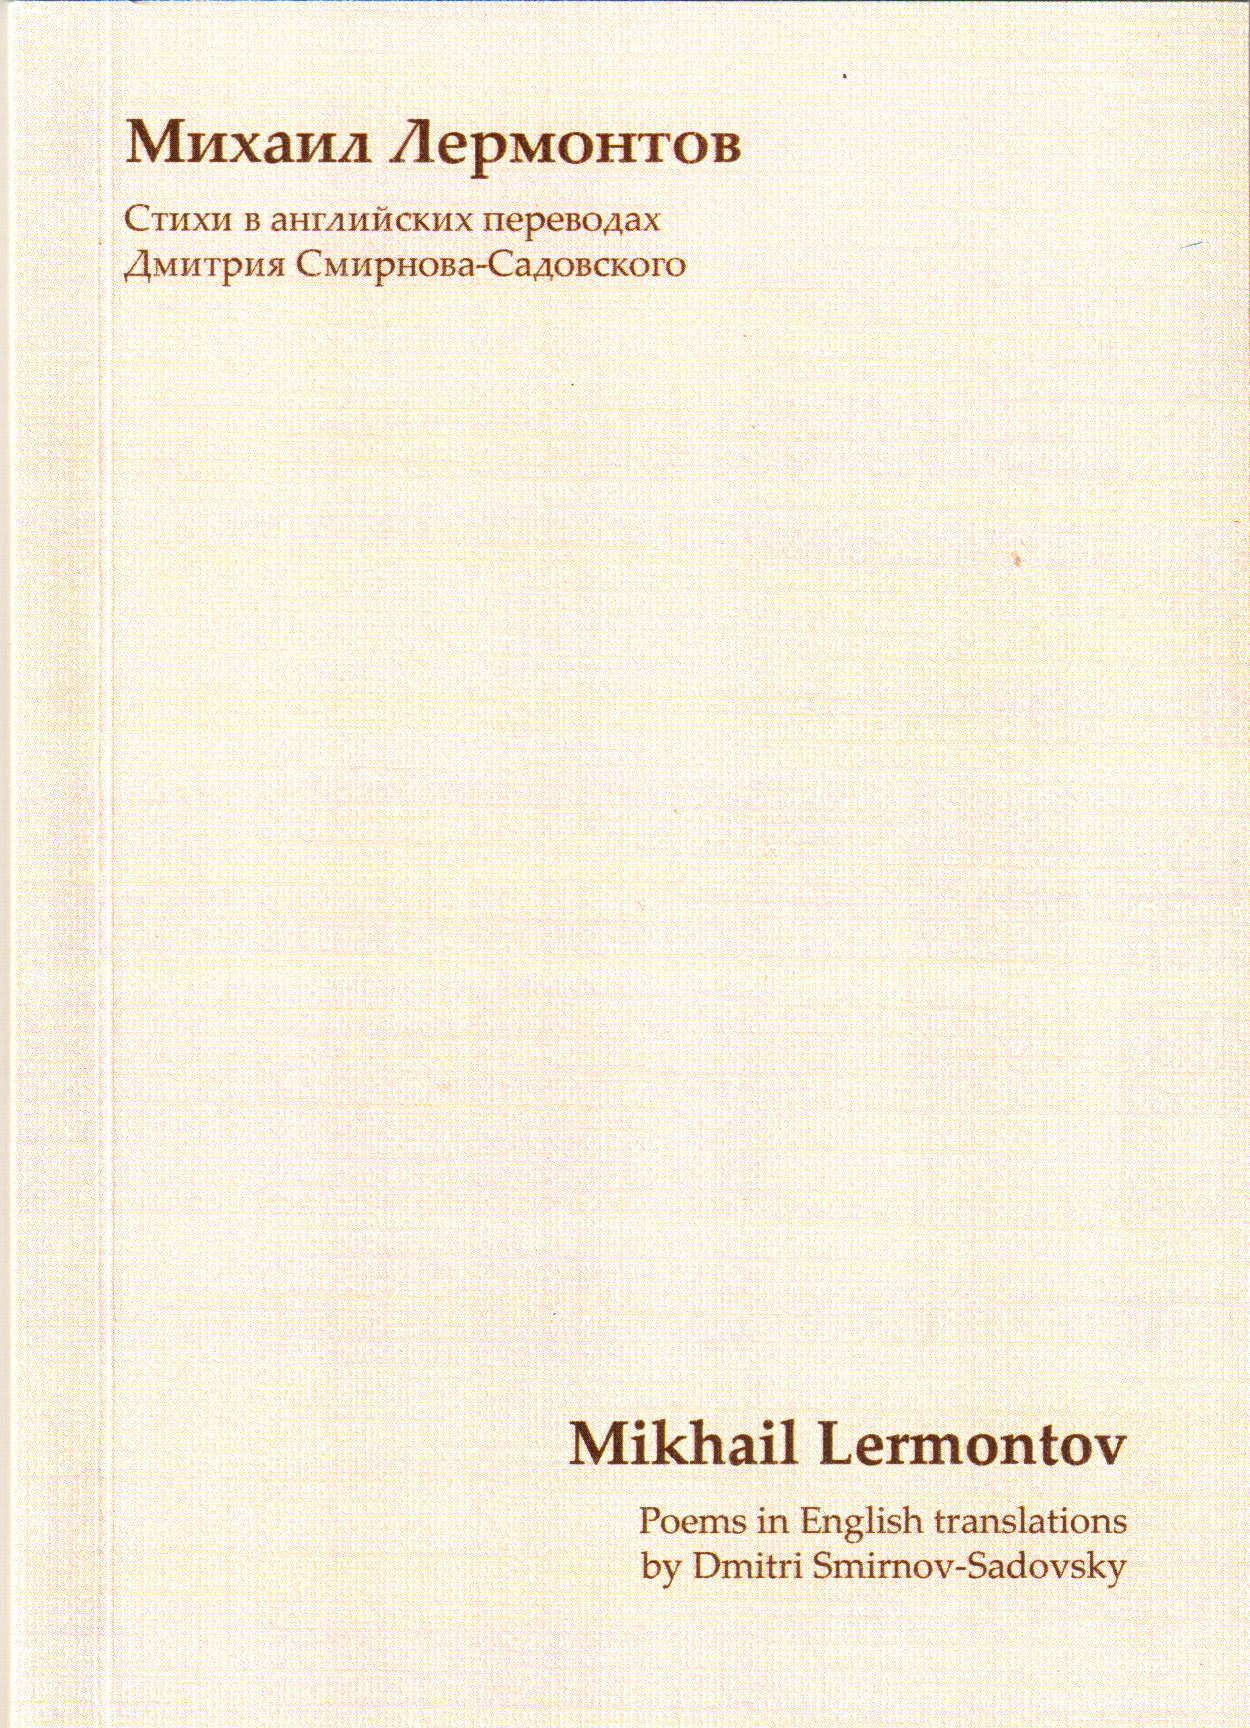 Mikhail Lermontov in English.jpg